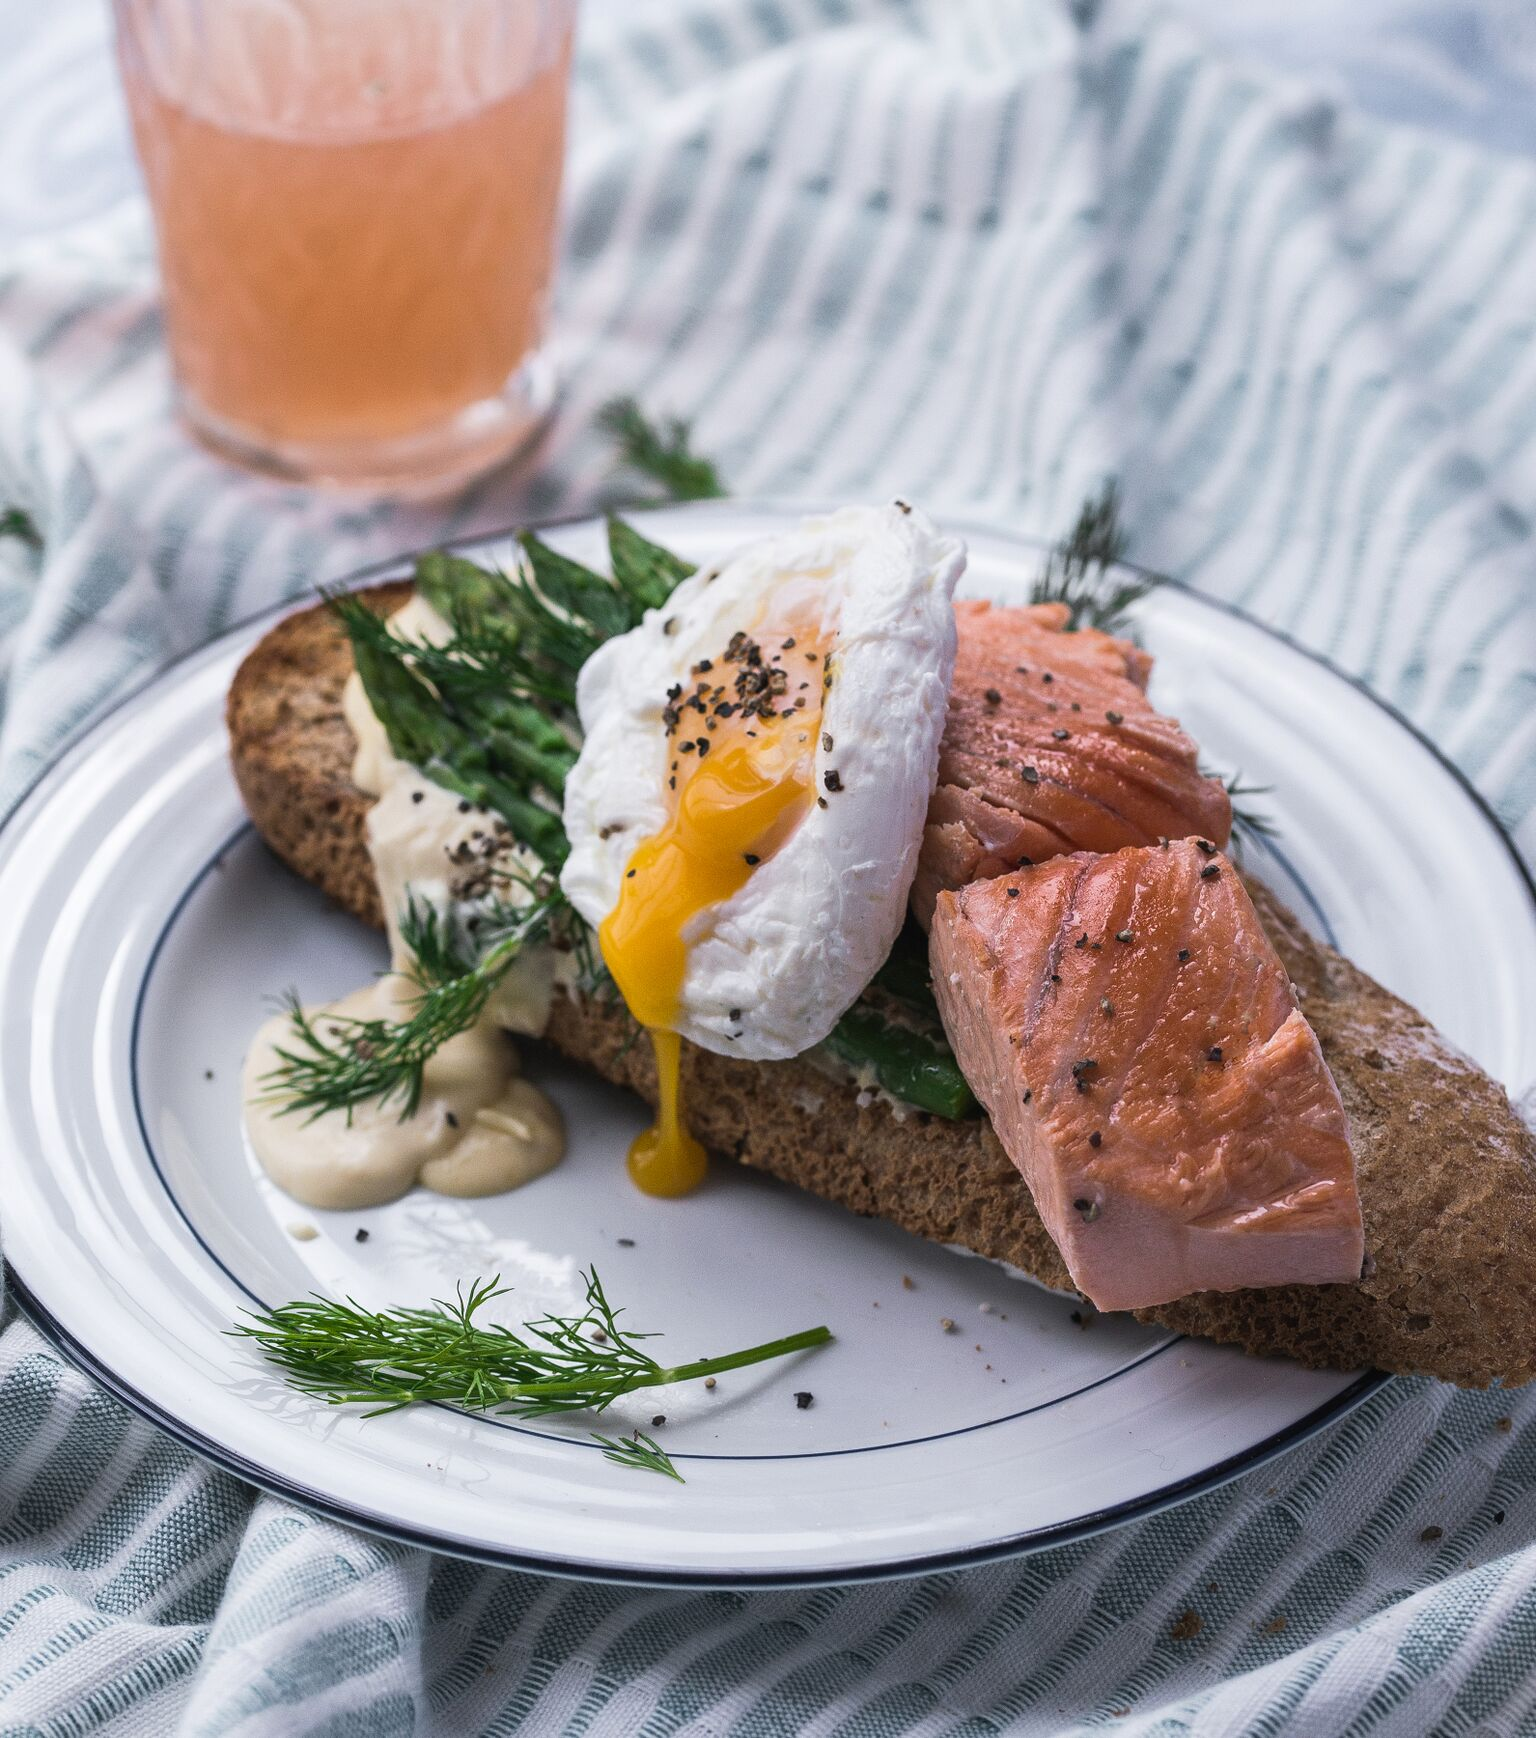 Poached Egg and Salmon on Toast